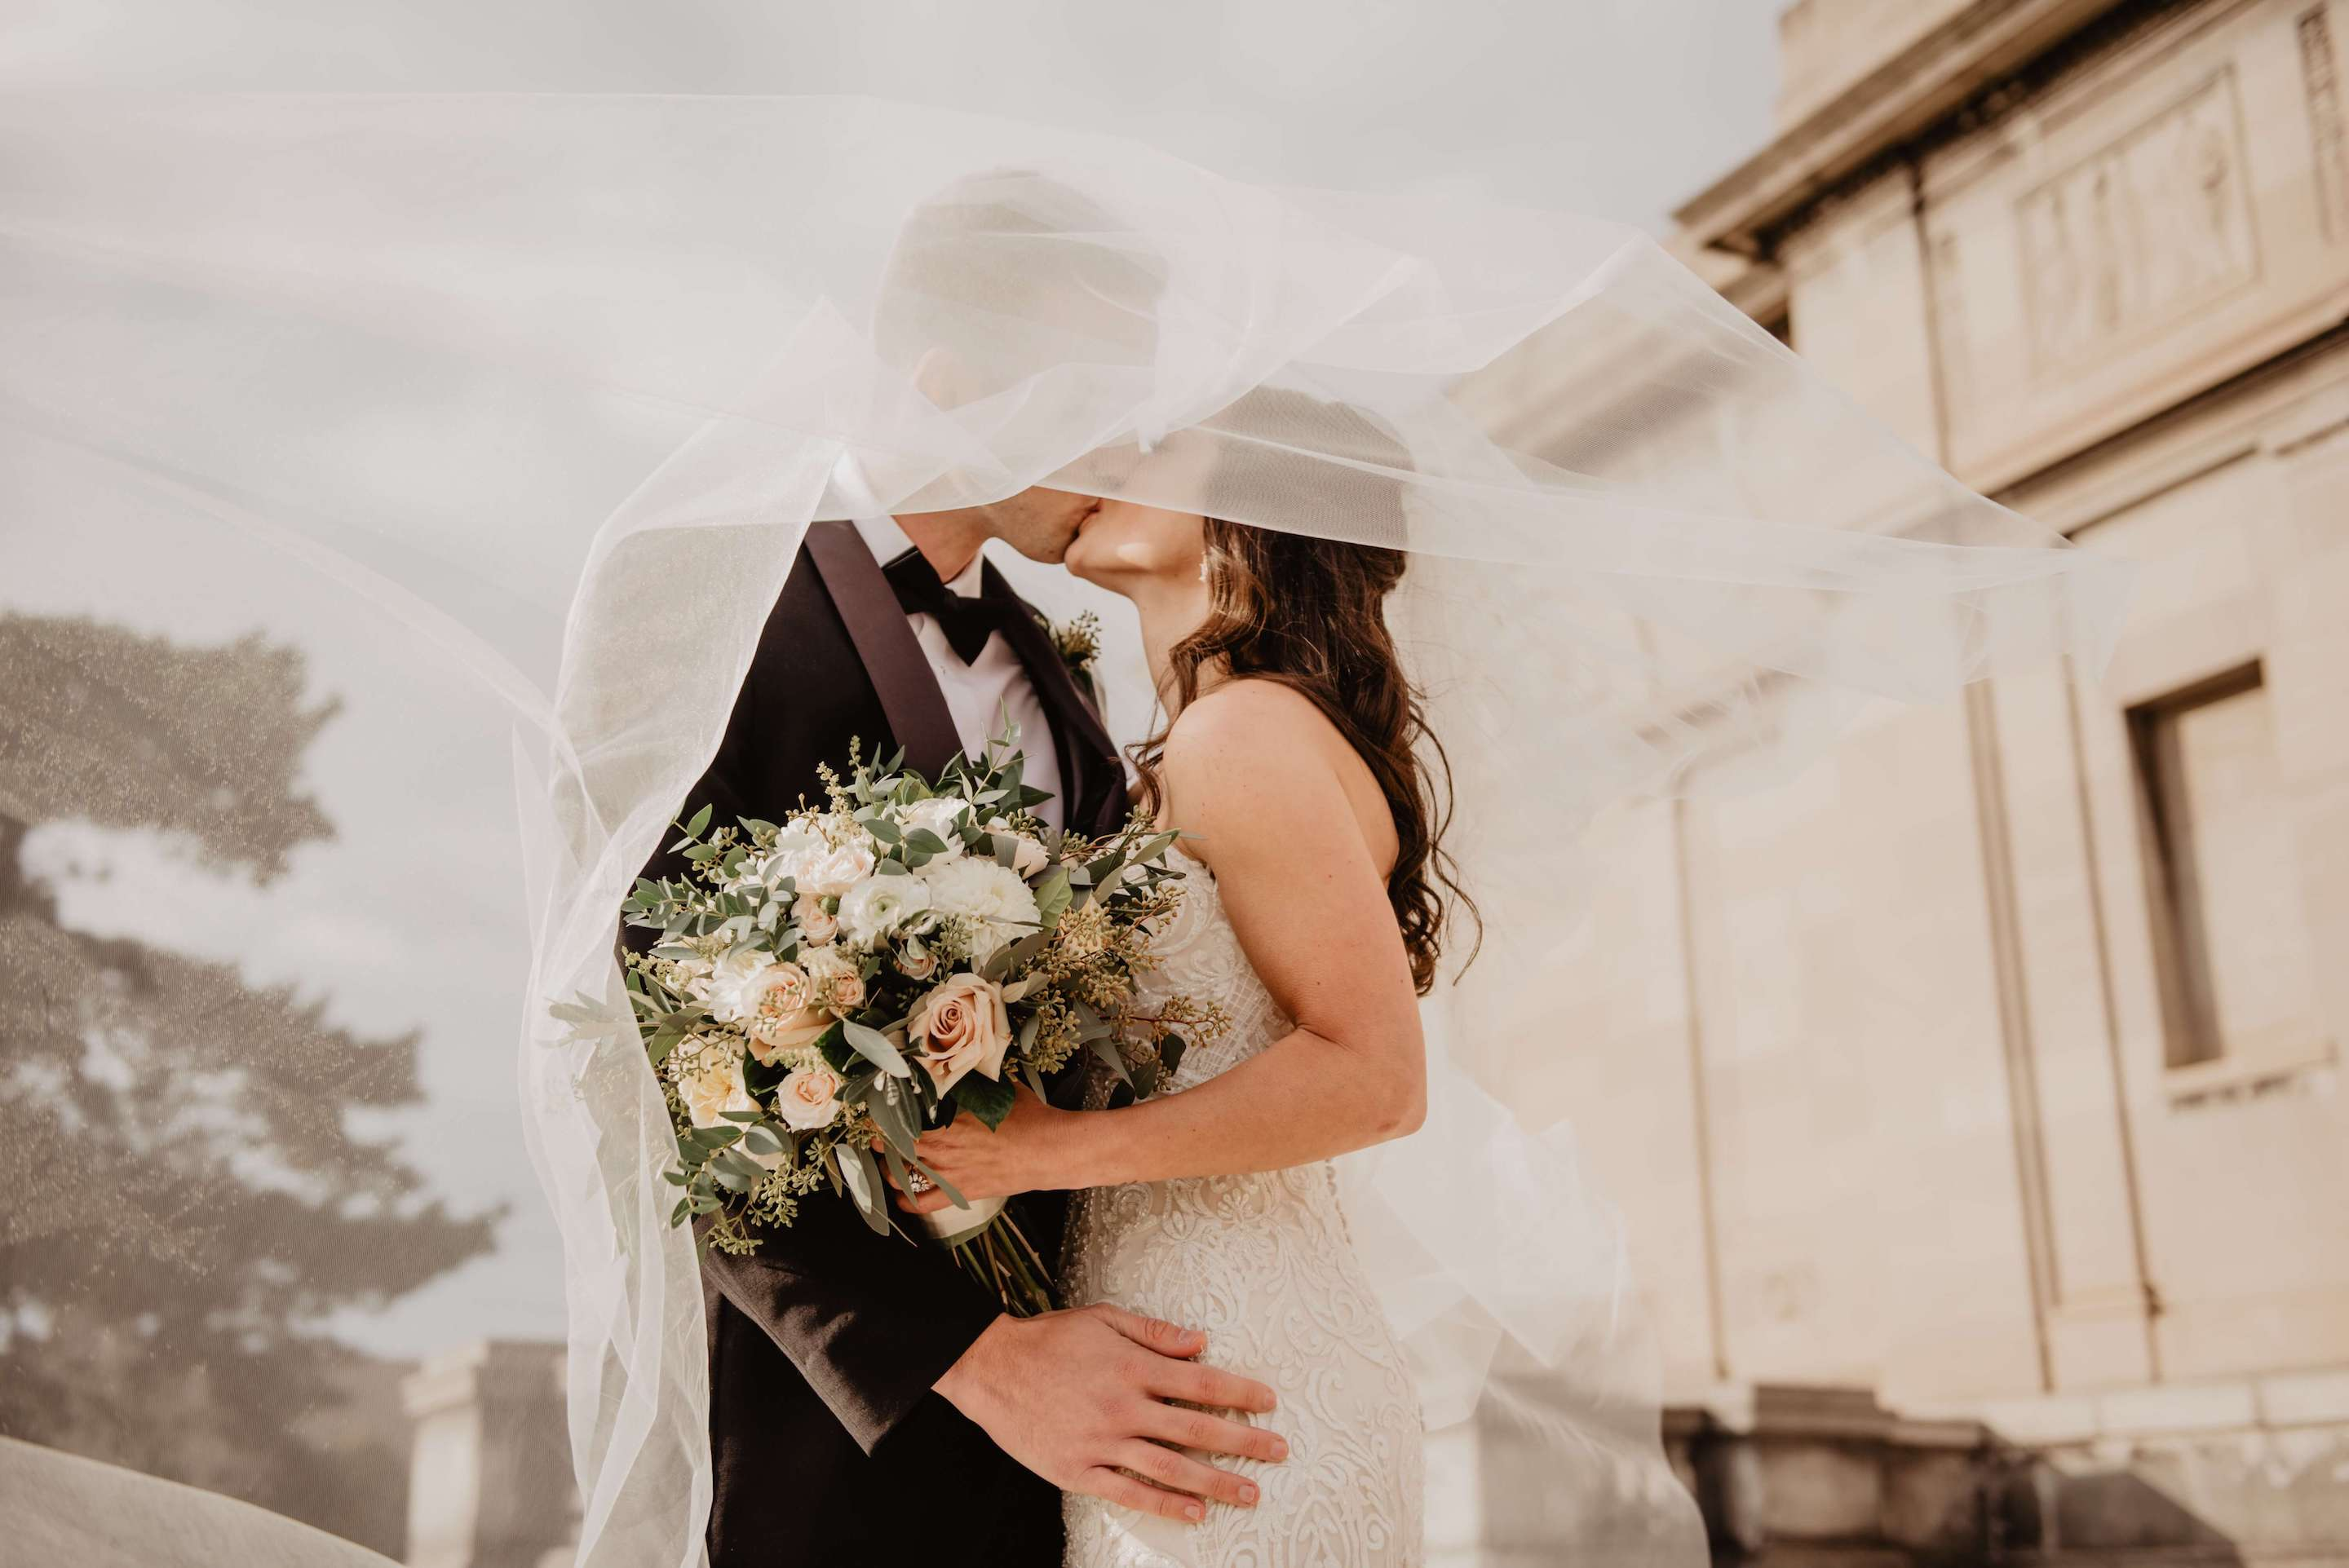 3 Benefits Of Having A Postnuptial Agreement